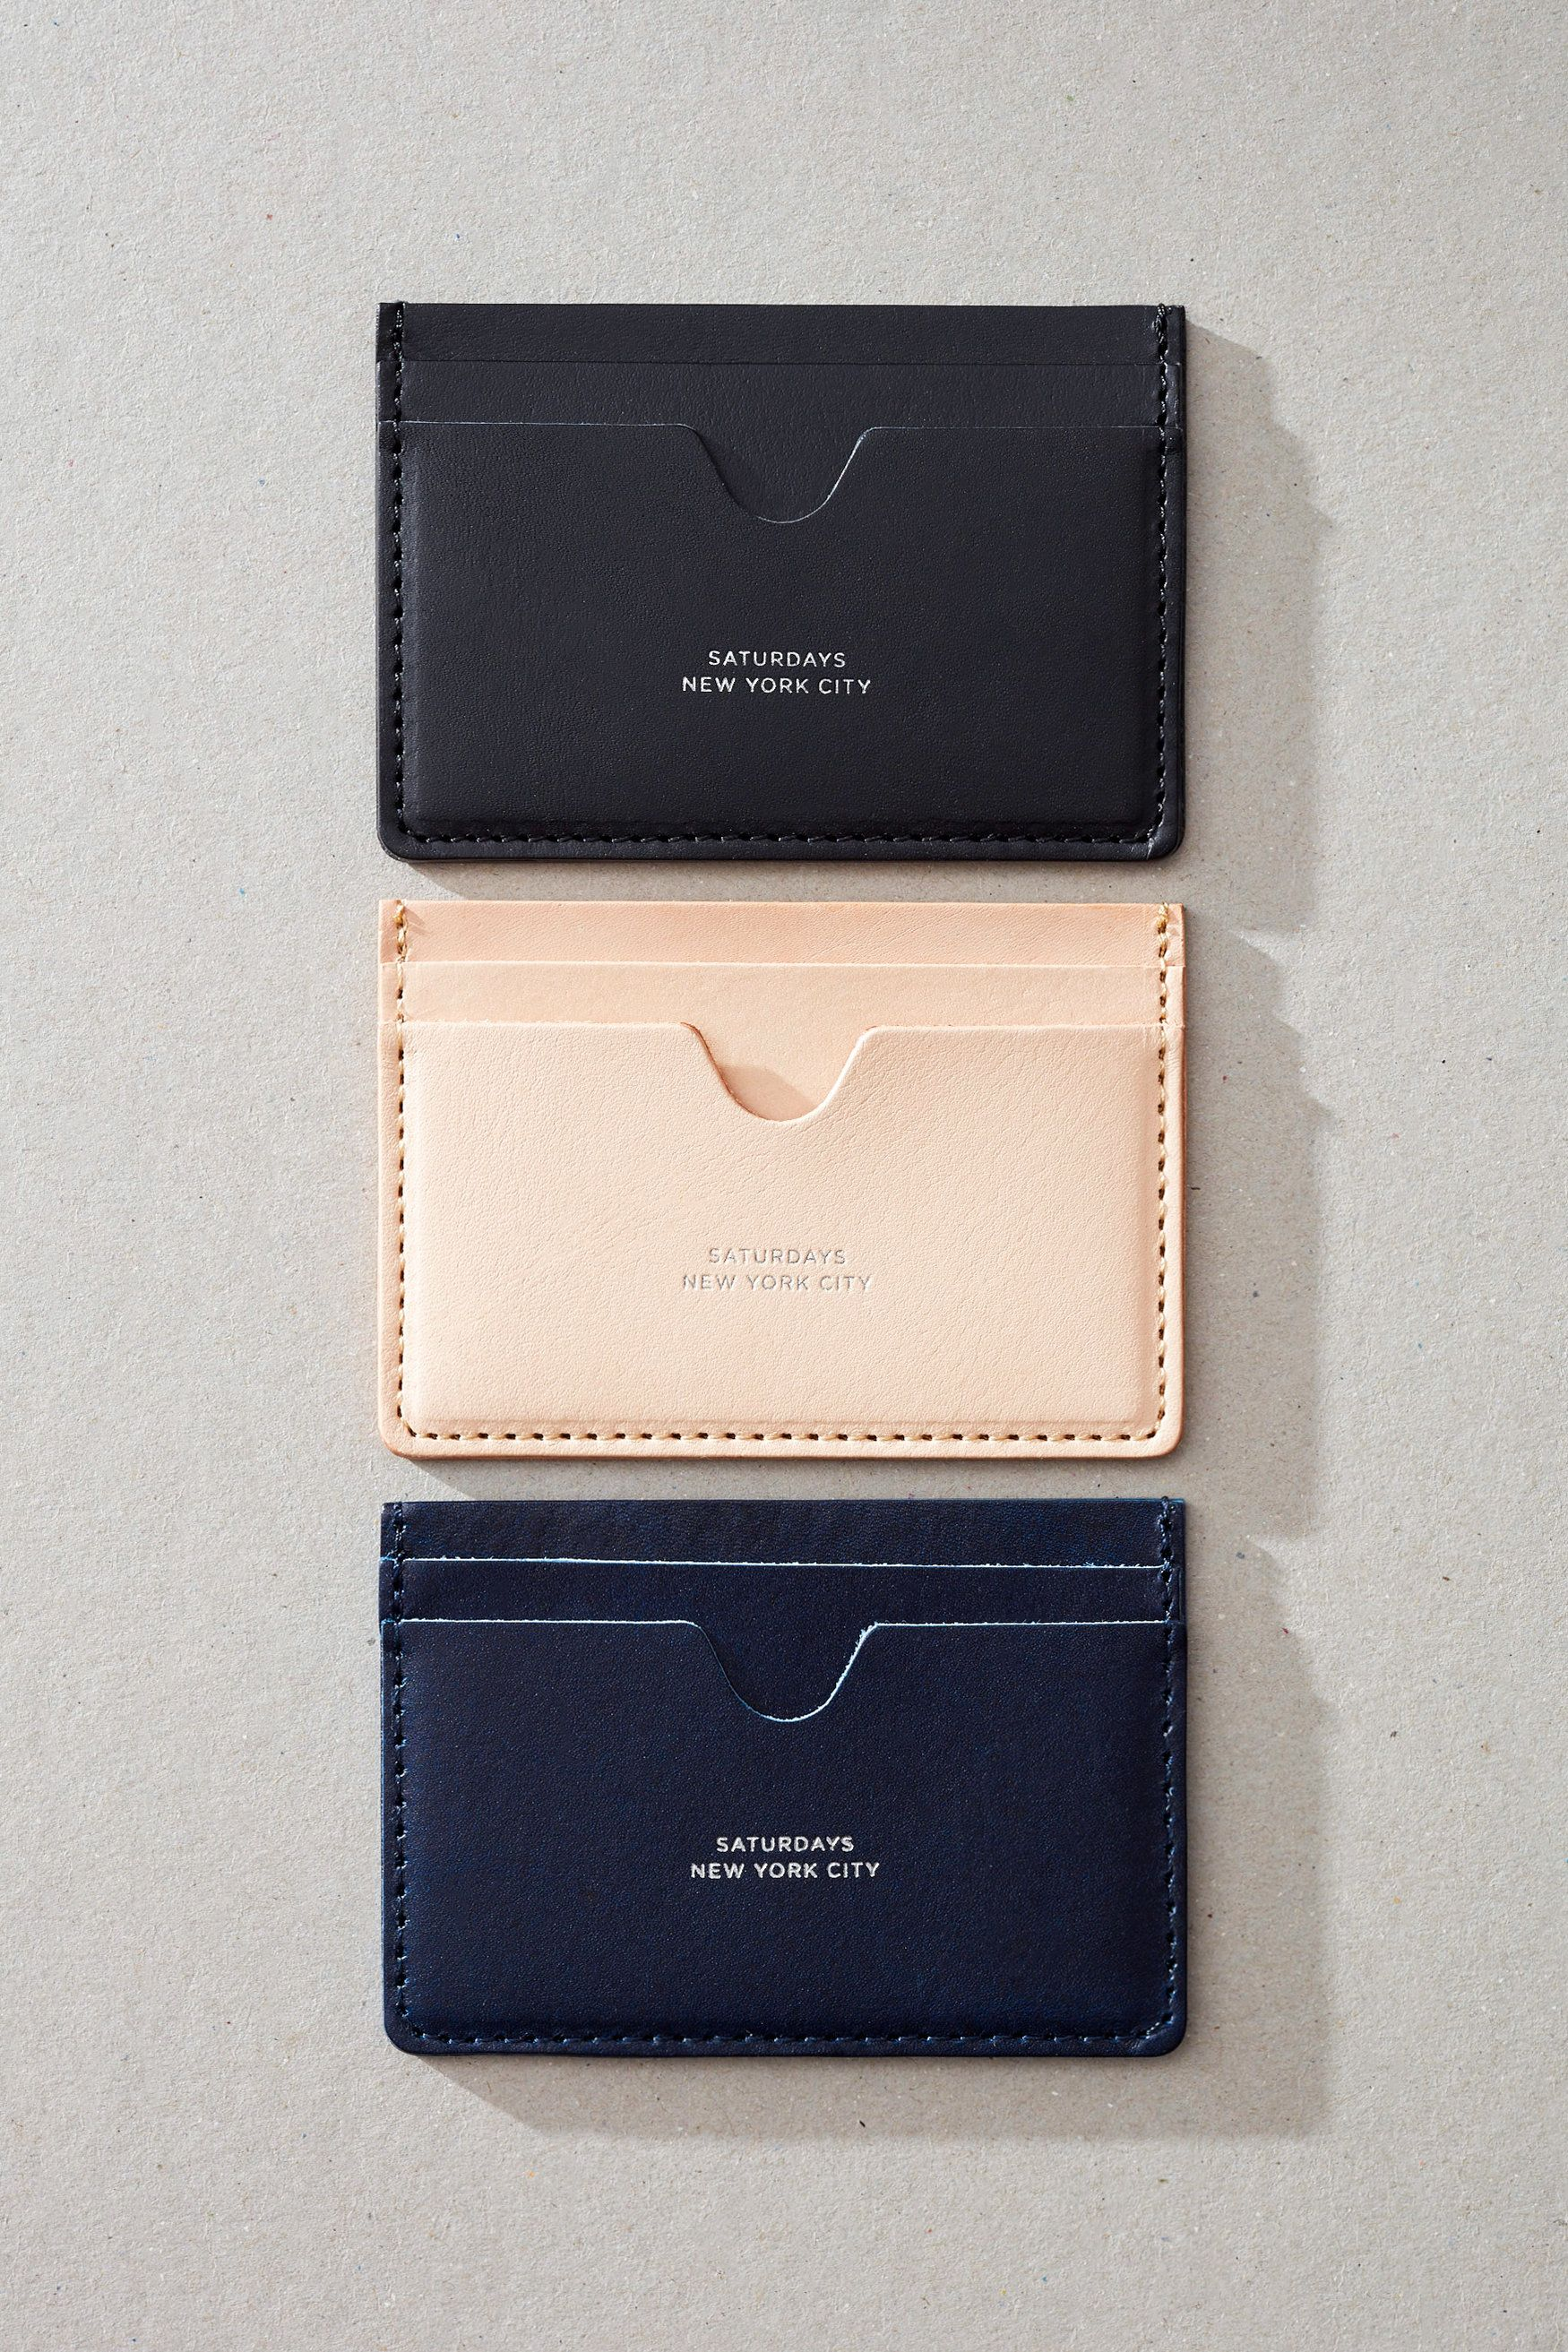 Accessories Leather Wallet Pattern Handcrafted Leather Wallet Card Holder Leather